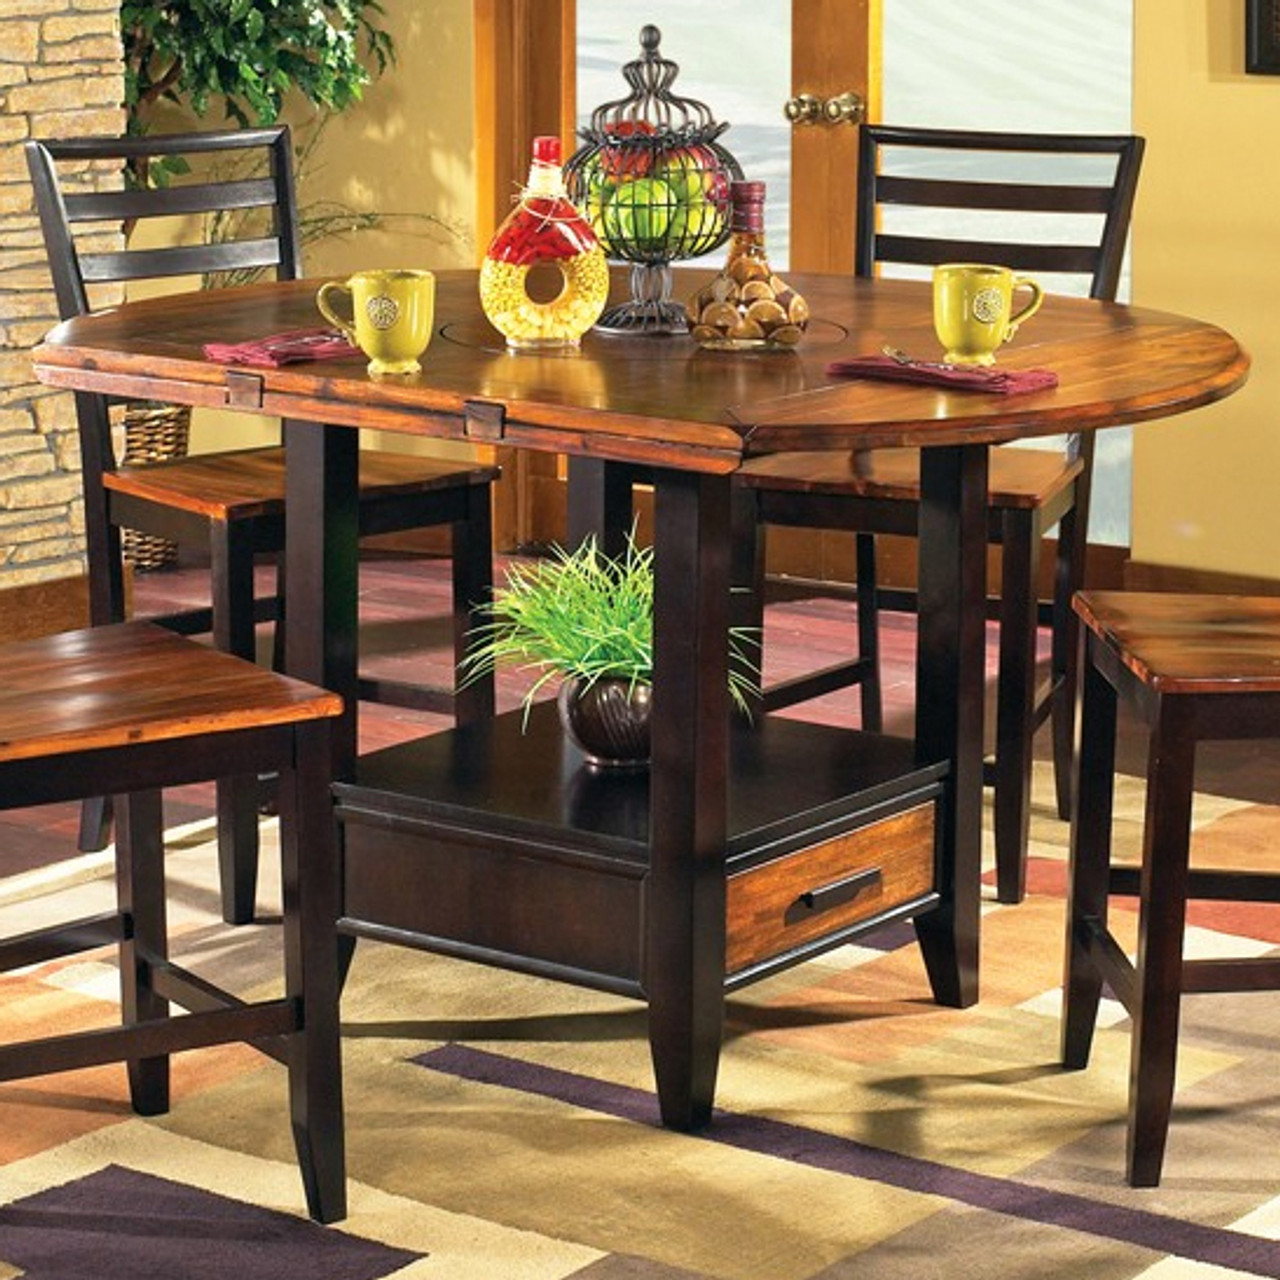 Denver 9 Piece Counter Height Set with Lazy Susan